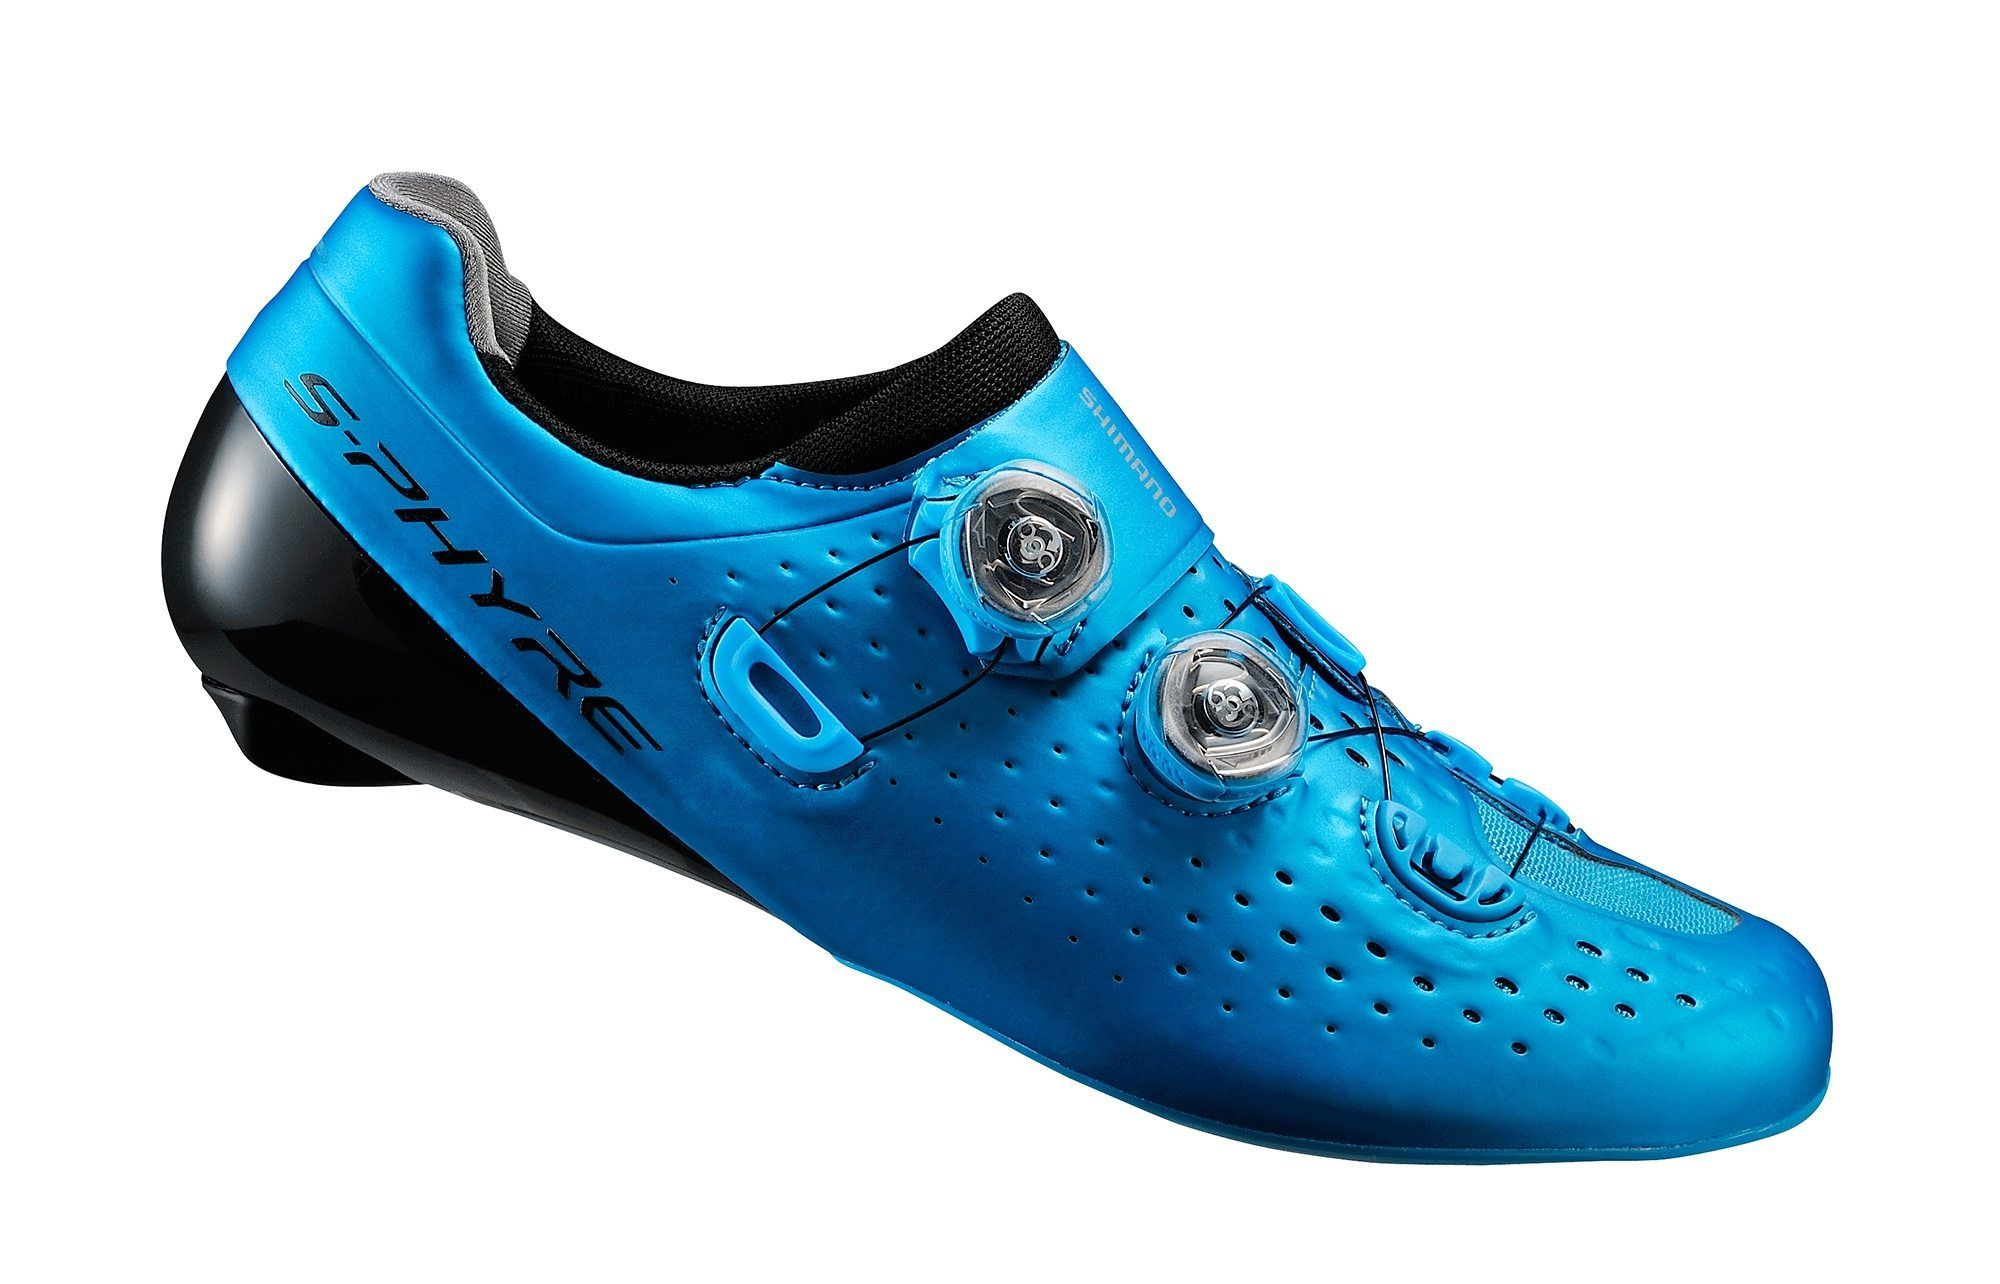 Specialized Pro Road Shoes Wide Fit Review